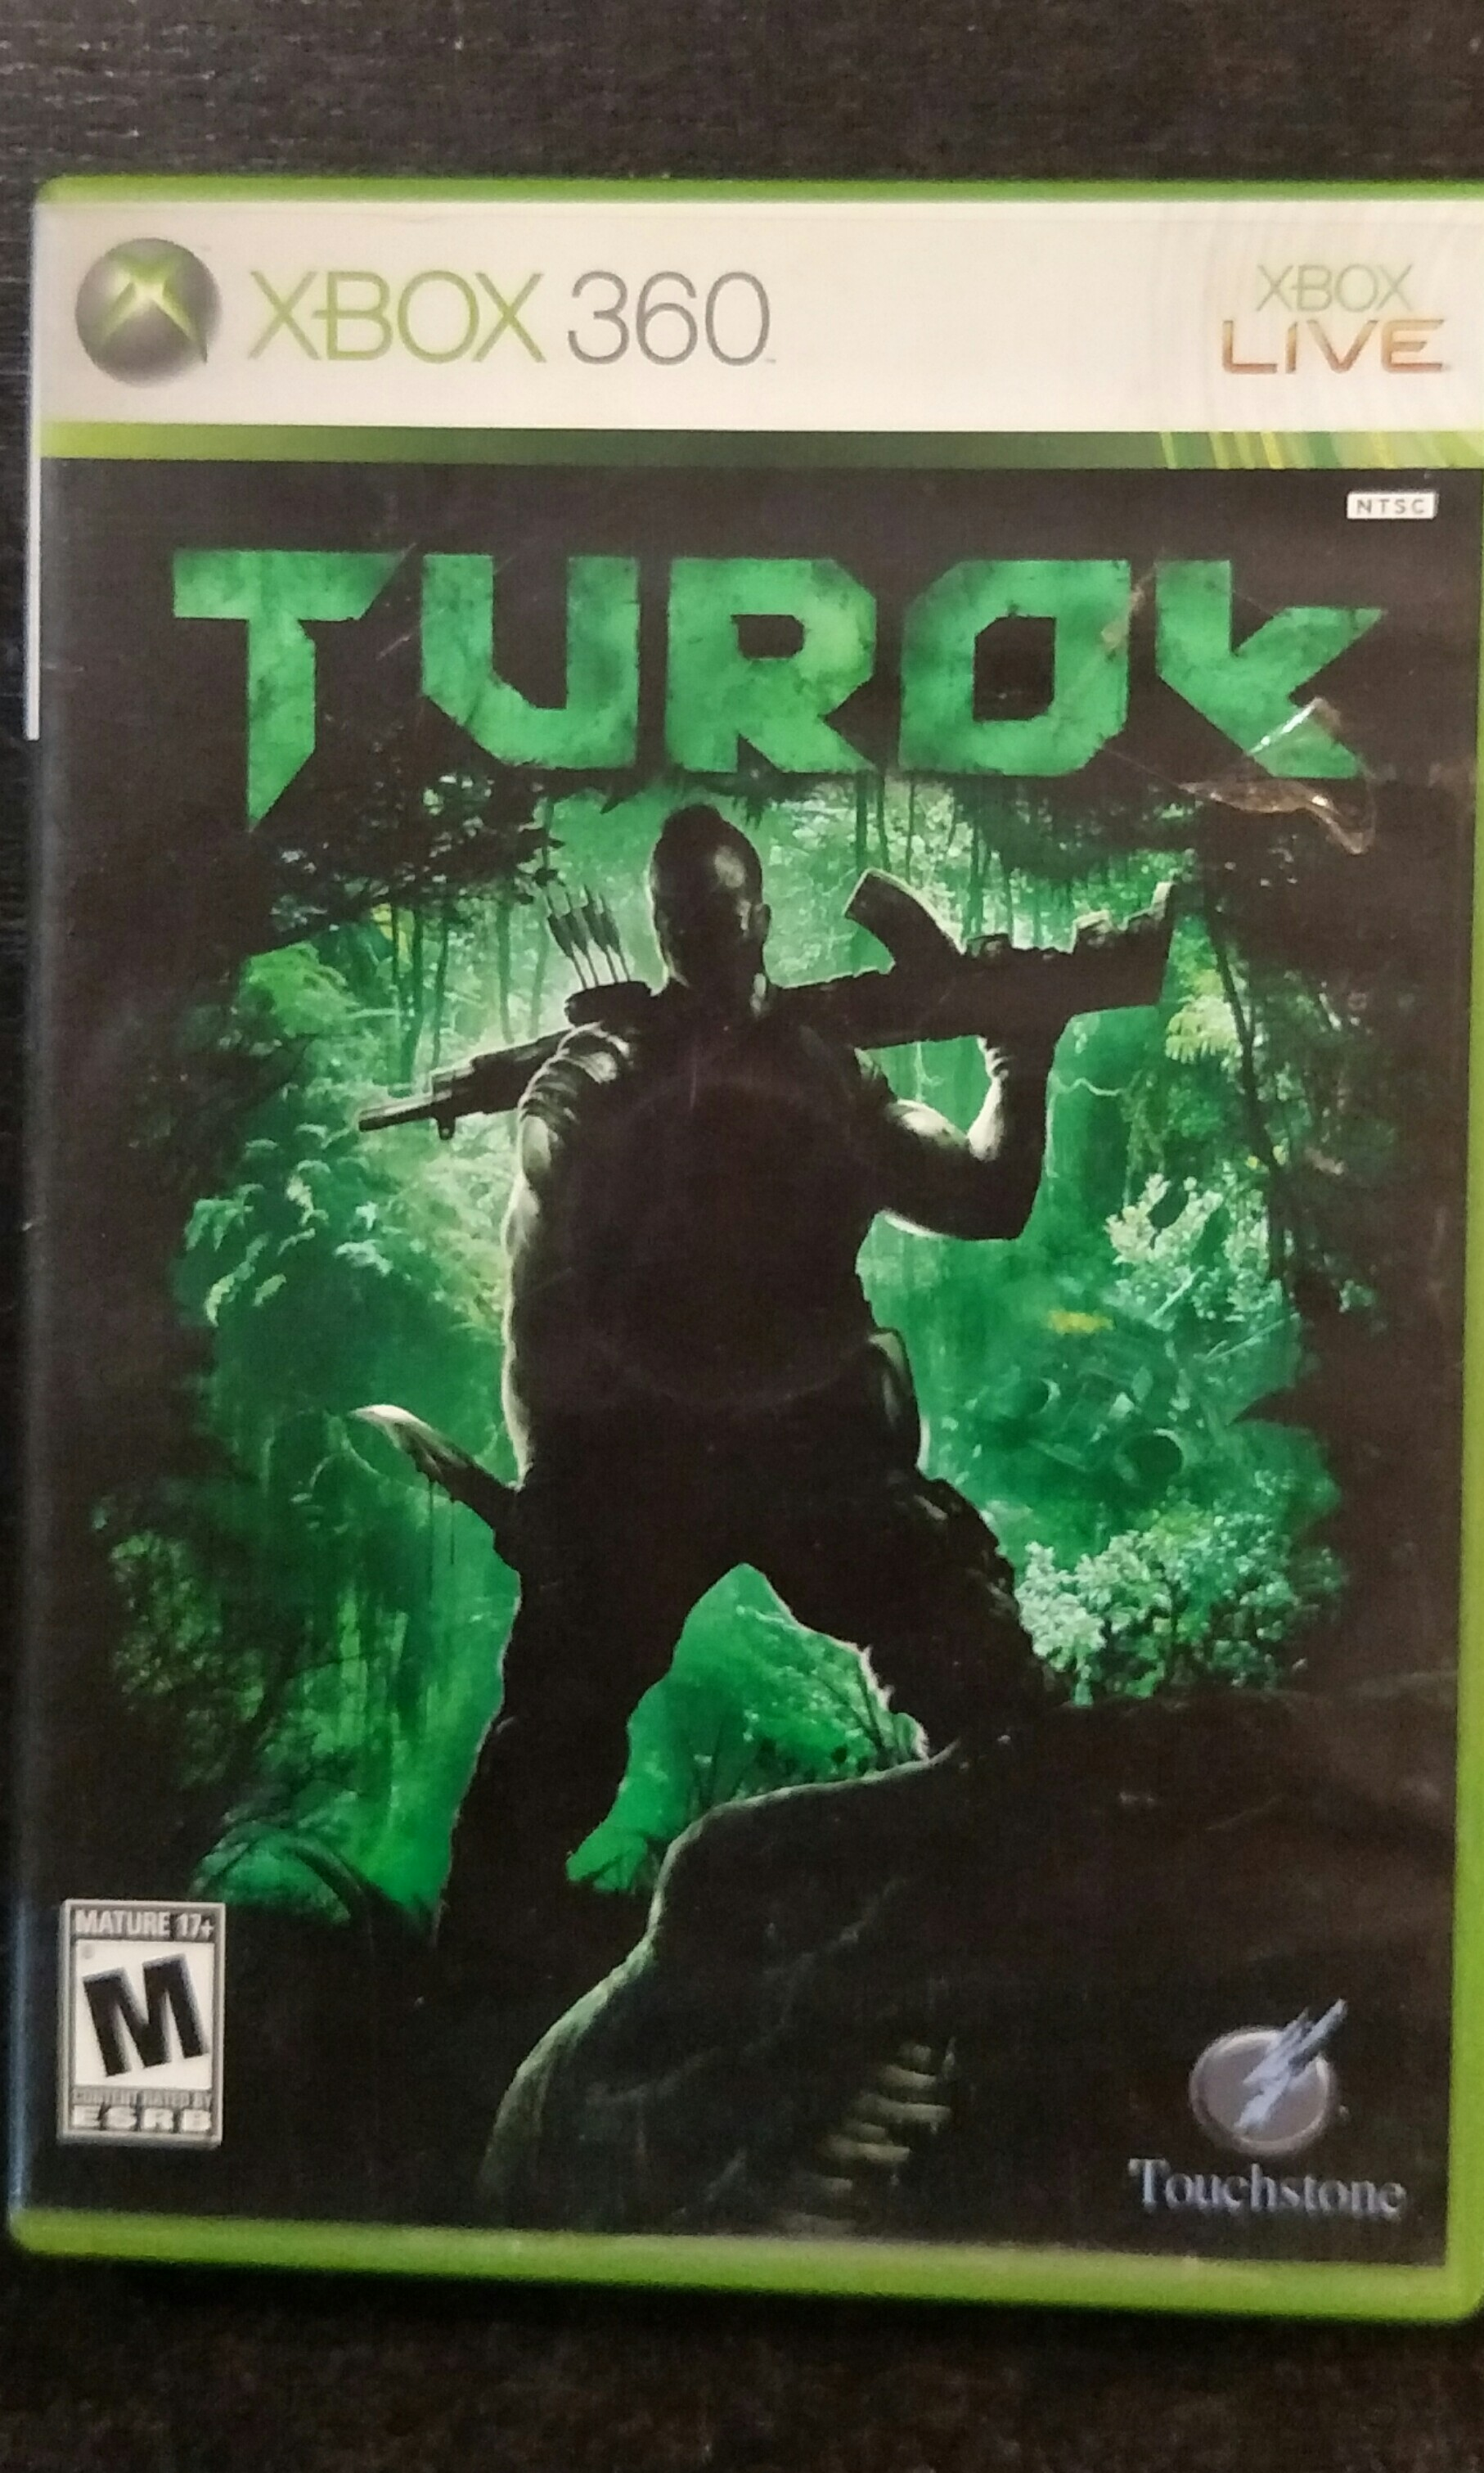 Xbox 360 Turok, Toys & Games, Video Gaming, Video Games on Carousell